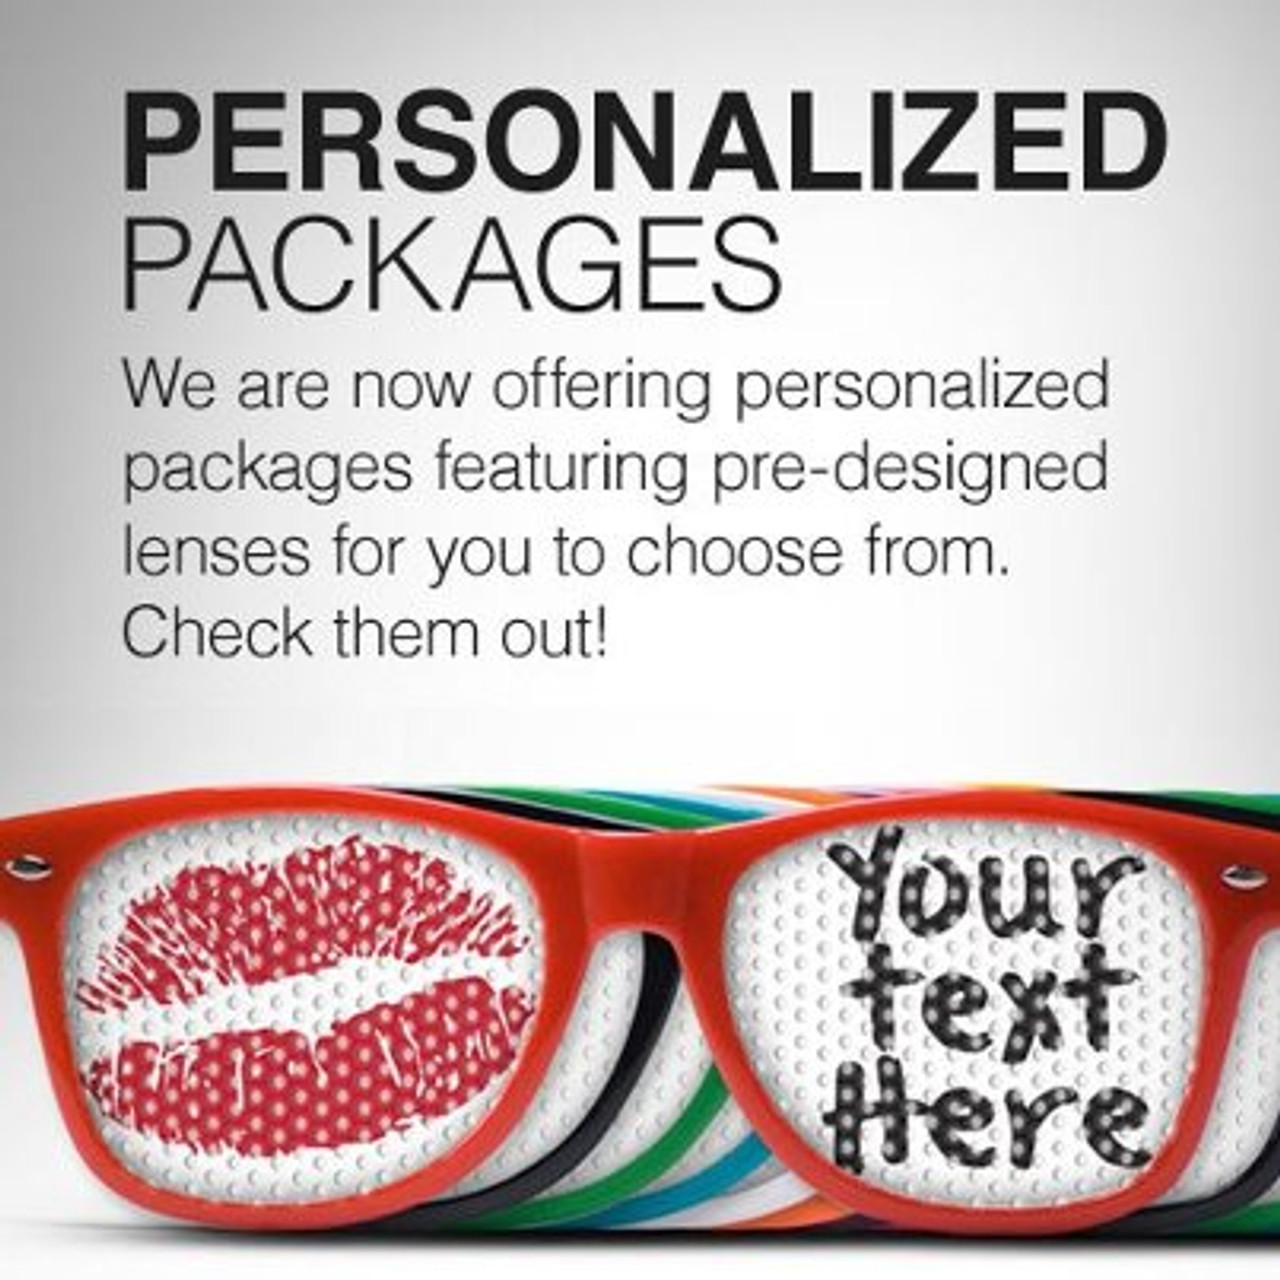 DJ, Promo, Sunglasses, I Heart, Shades, Promotional, Printed Lenses, Party, Giveaway,Merch, custom, personalized